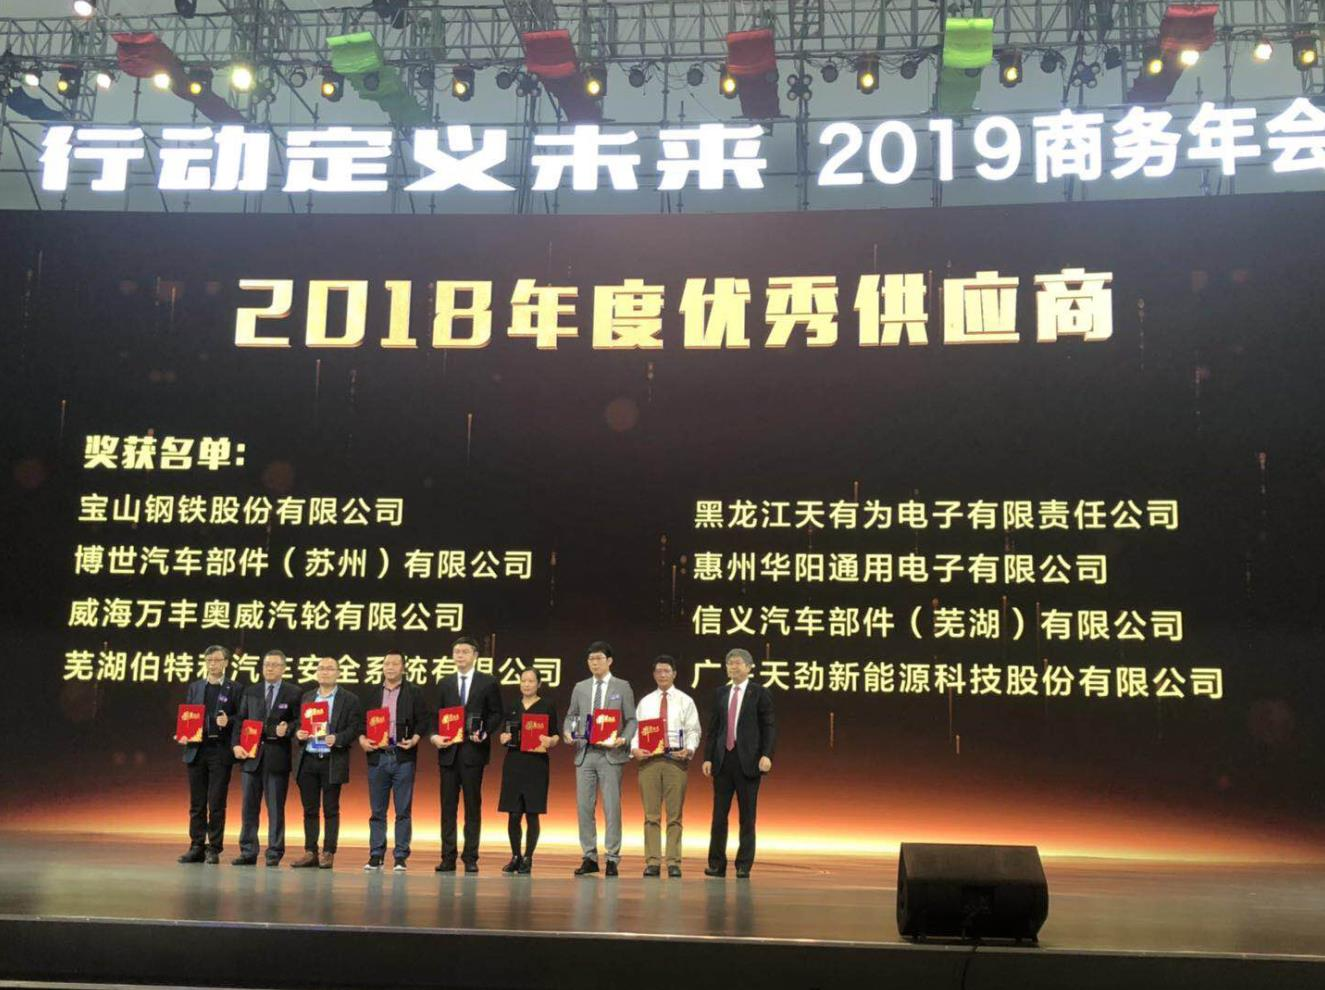 Tianjin Co., Ltd. is honored as